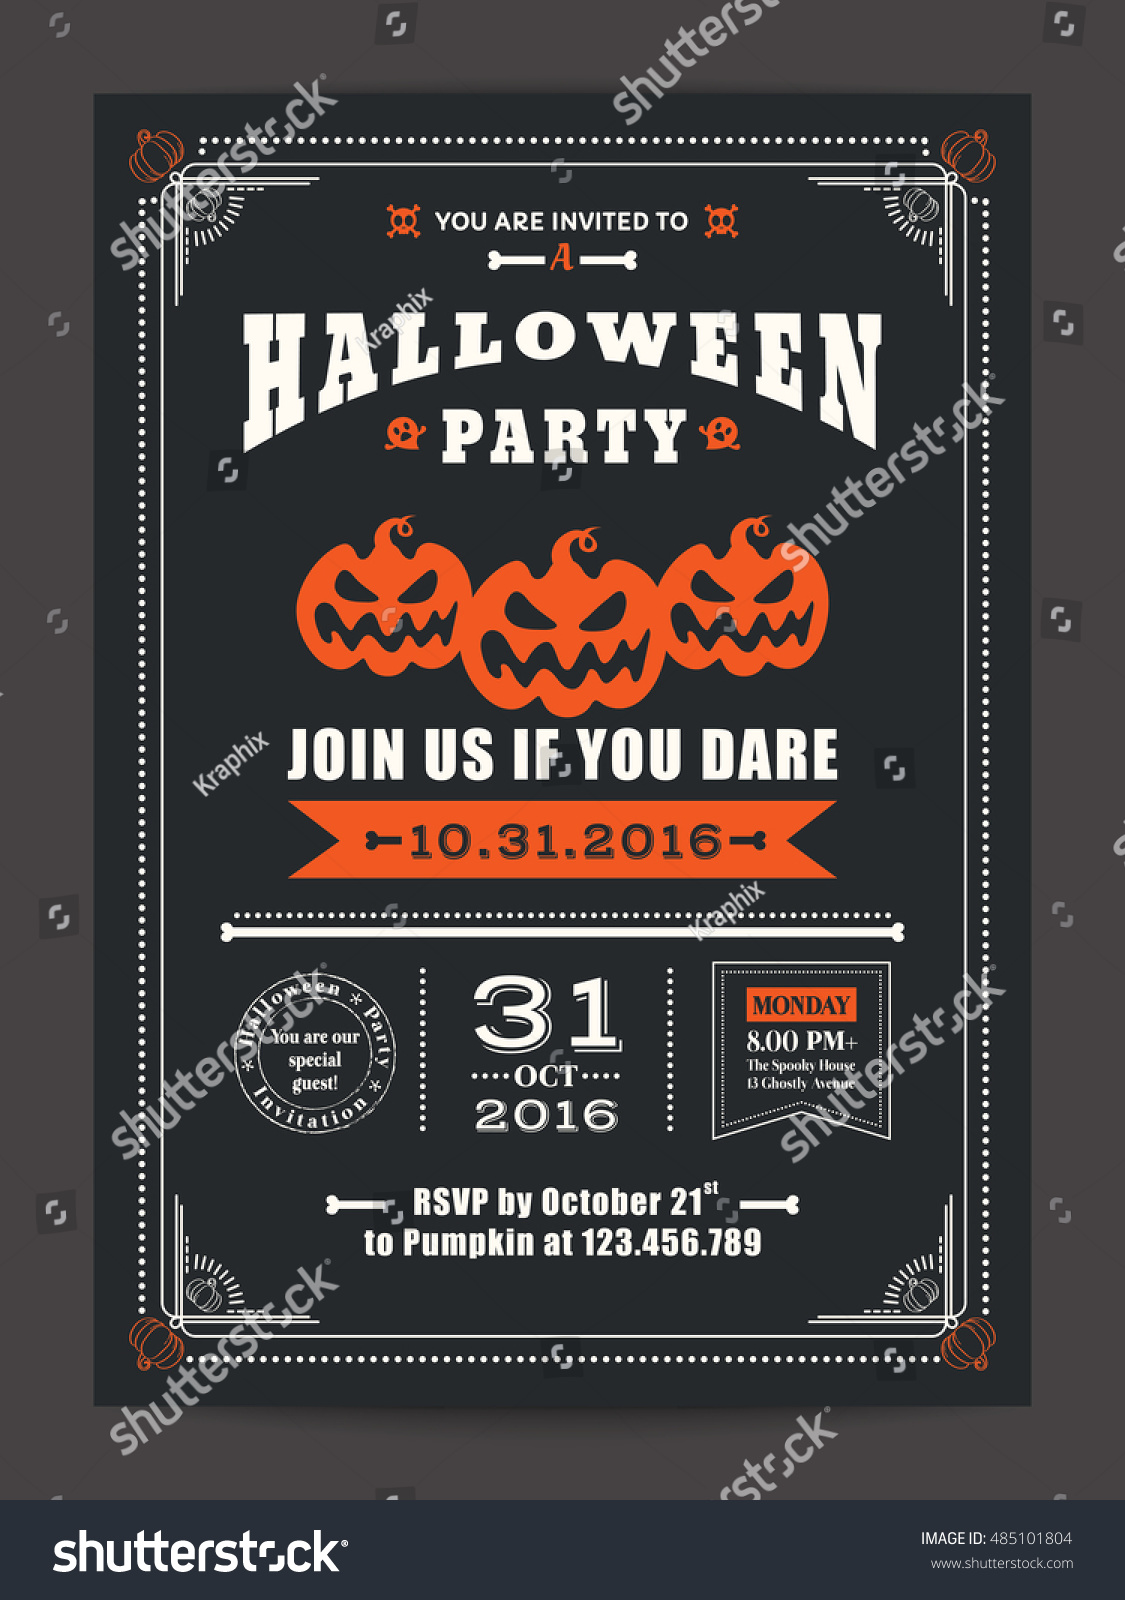 halloween night party with scary pumpkins design background for invitation card poster flyer - Halloween Night Party